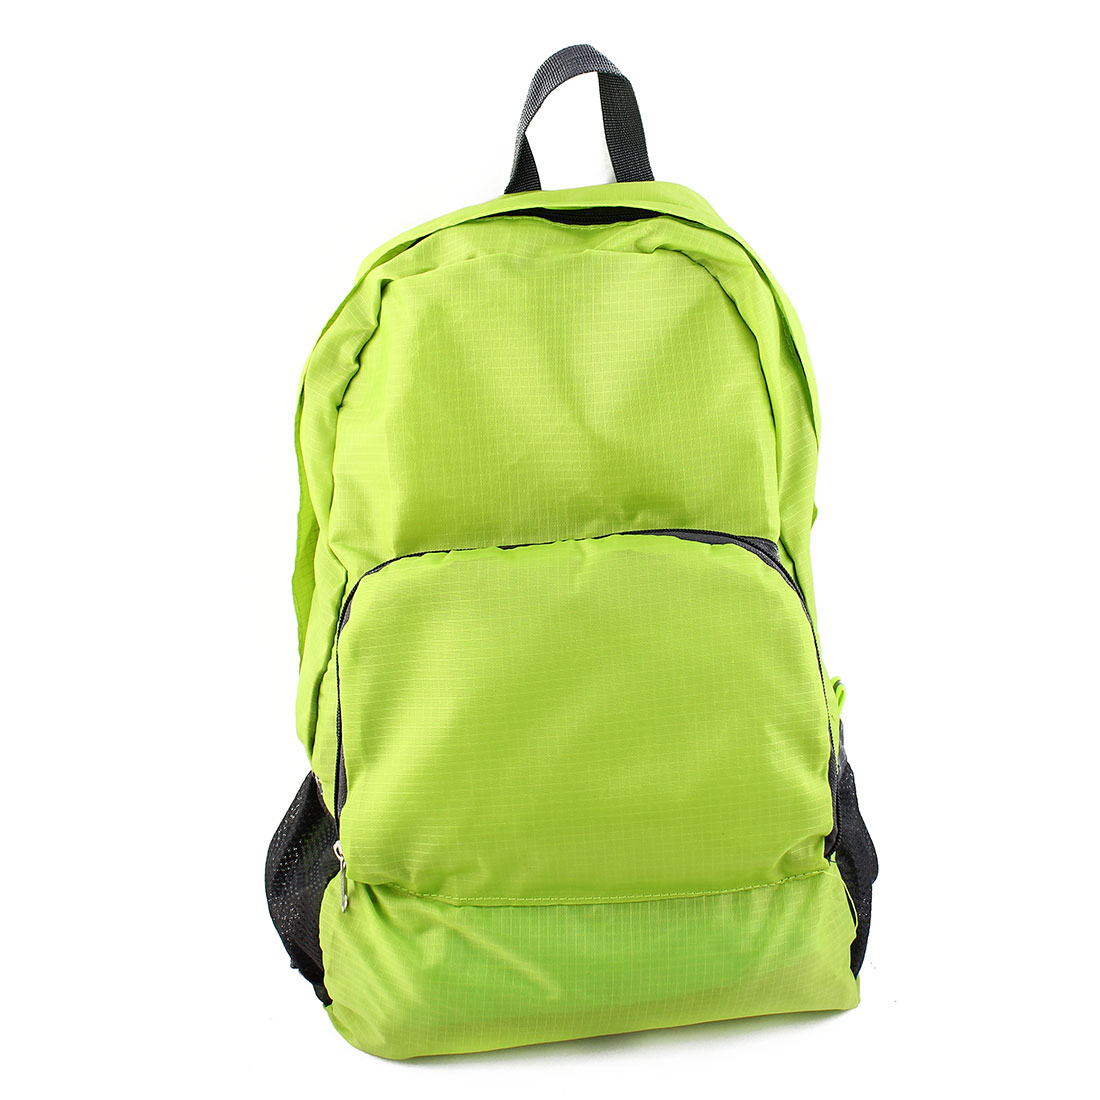 Lightweight Packable Pack Outdoor Travel Backpack Hiking Camping Daypack Sport Bag Green 20L